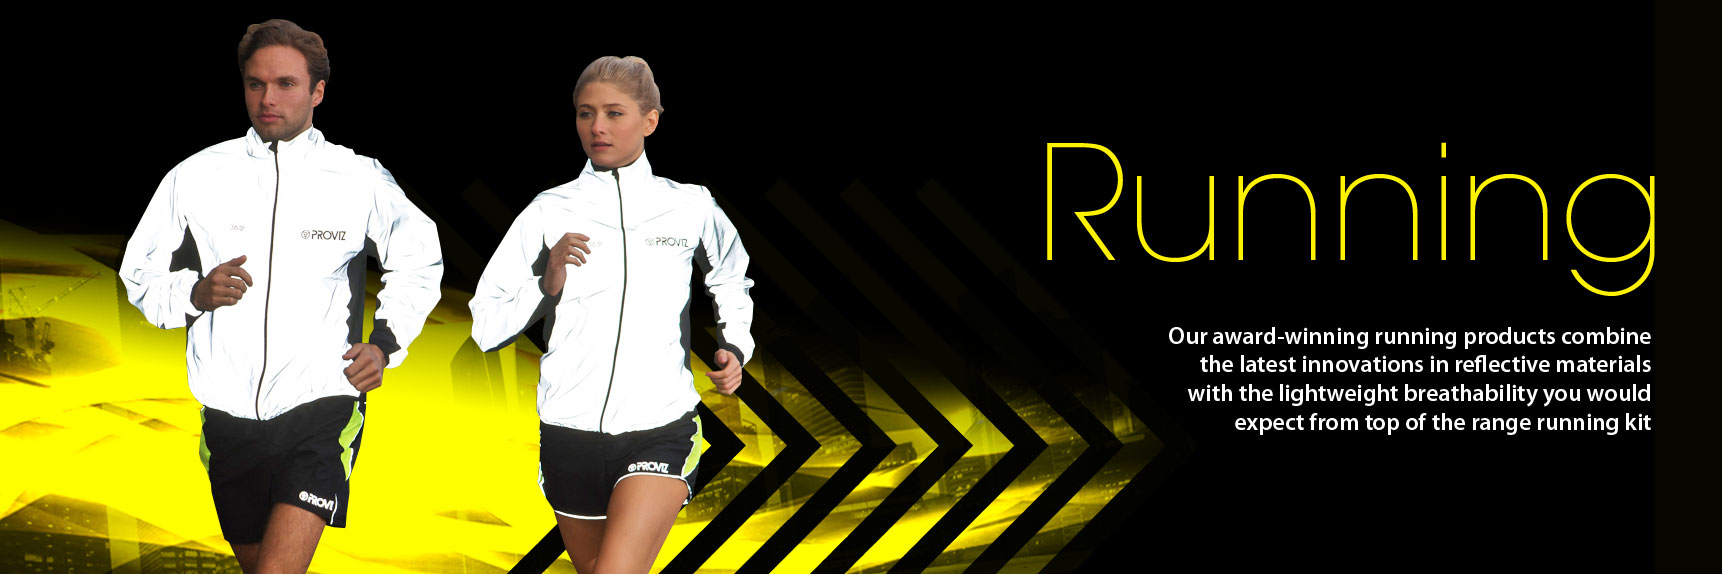 Running Apparel & Accessories